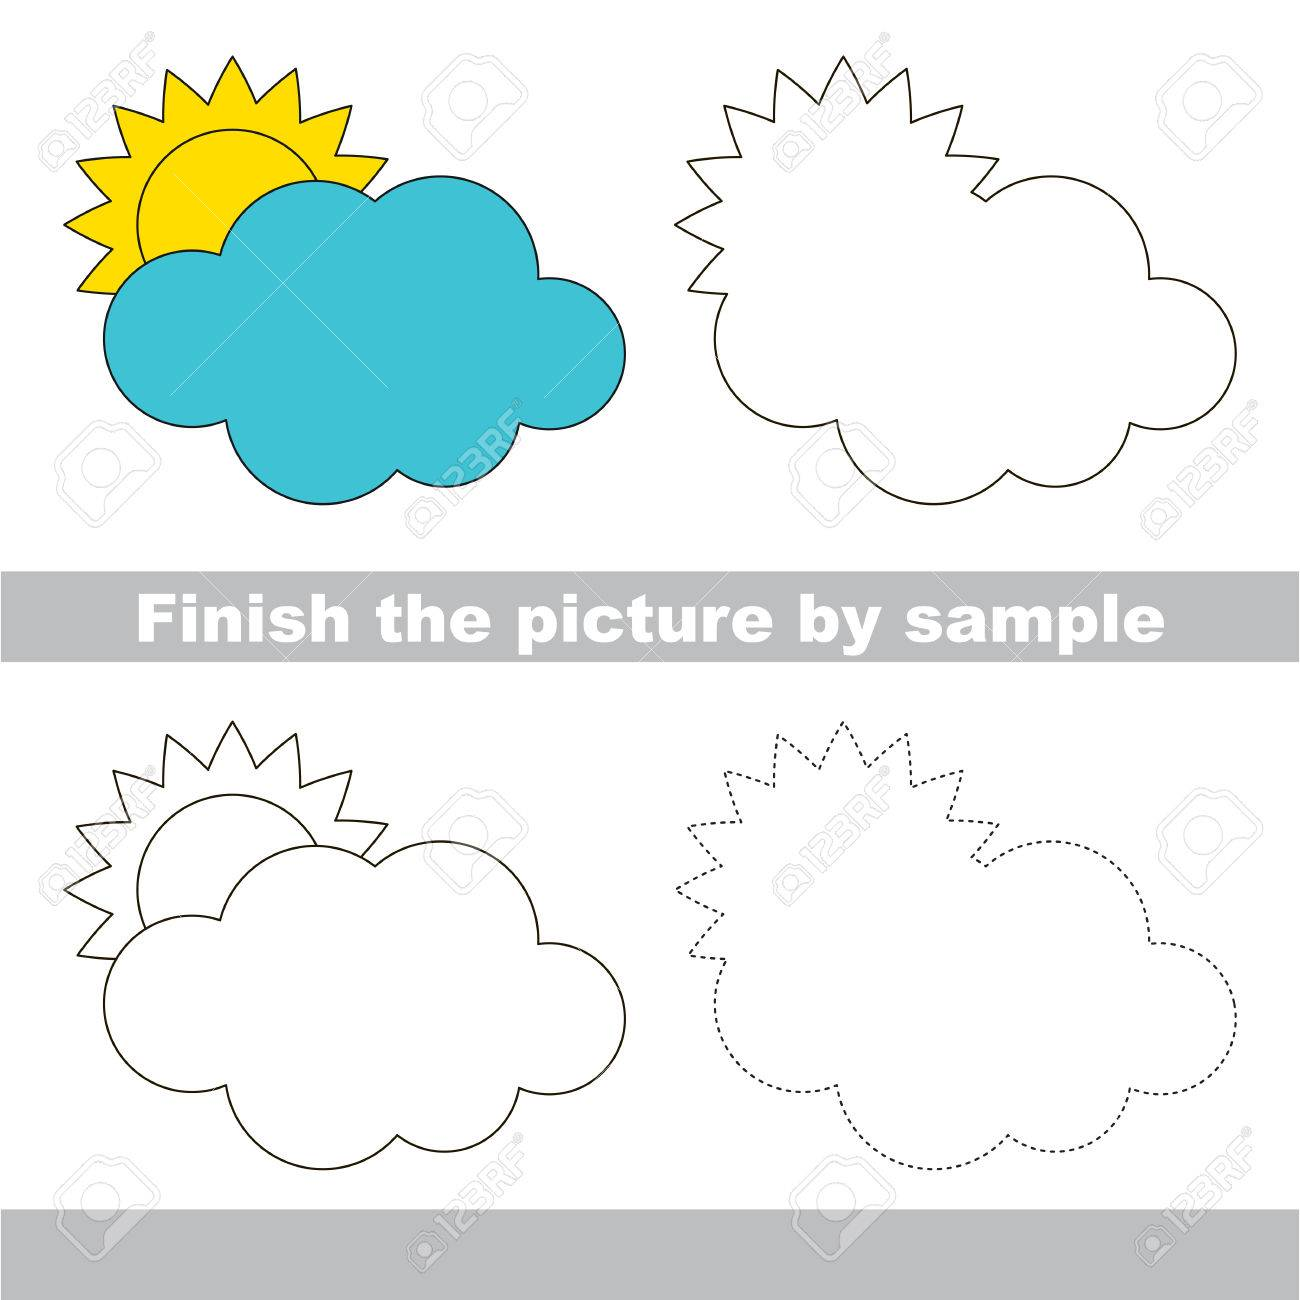 Drawing Worksheet For Children Finish The Picture And Draw The